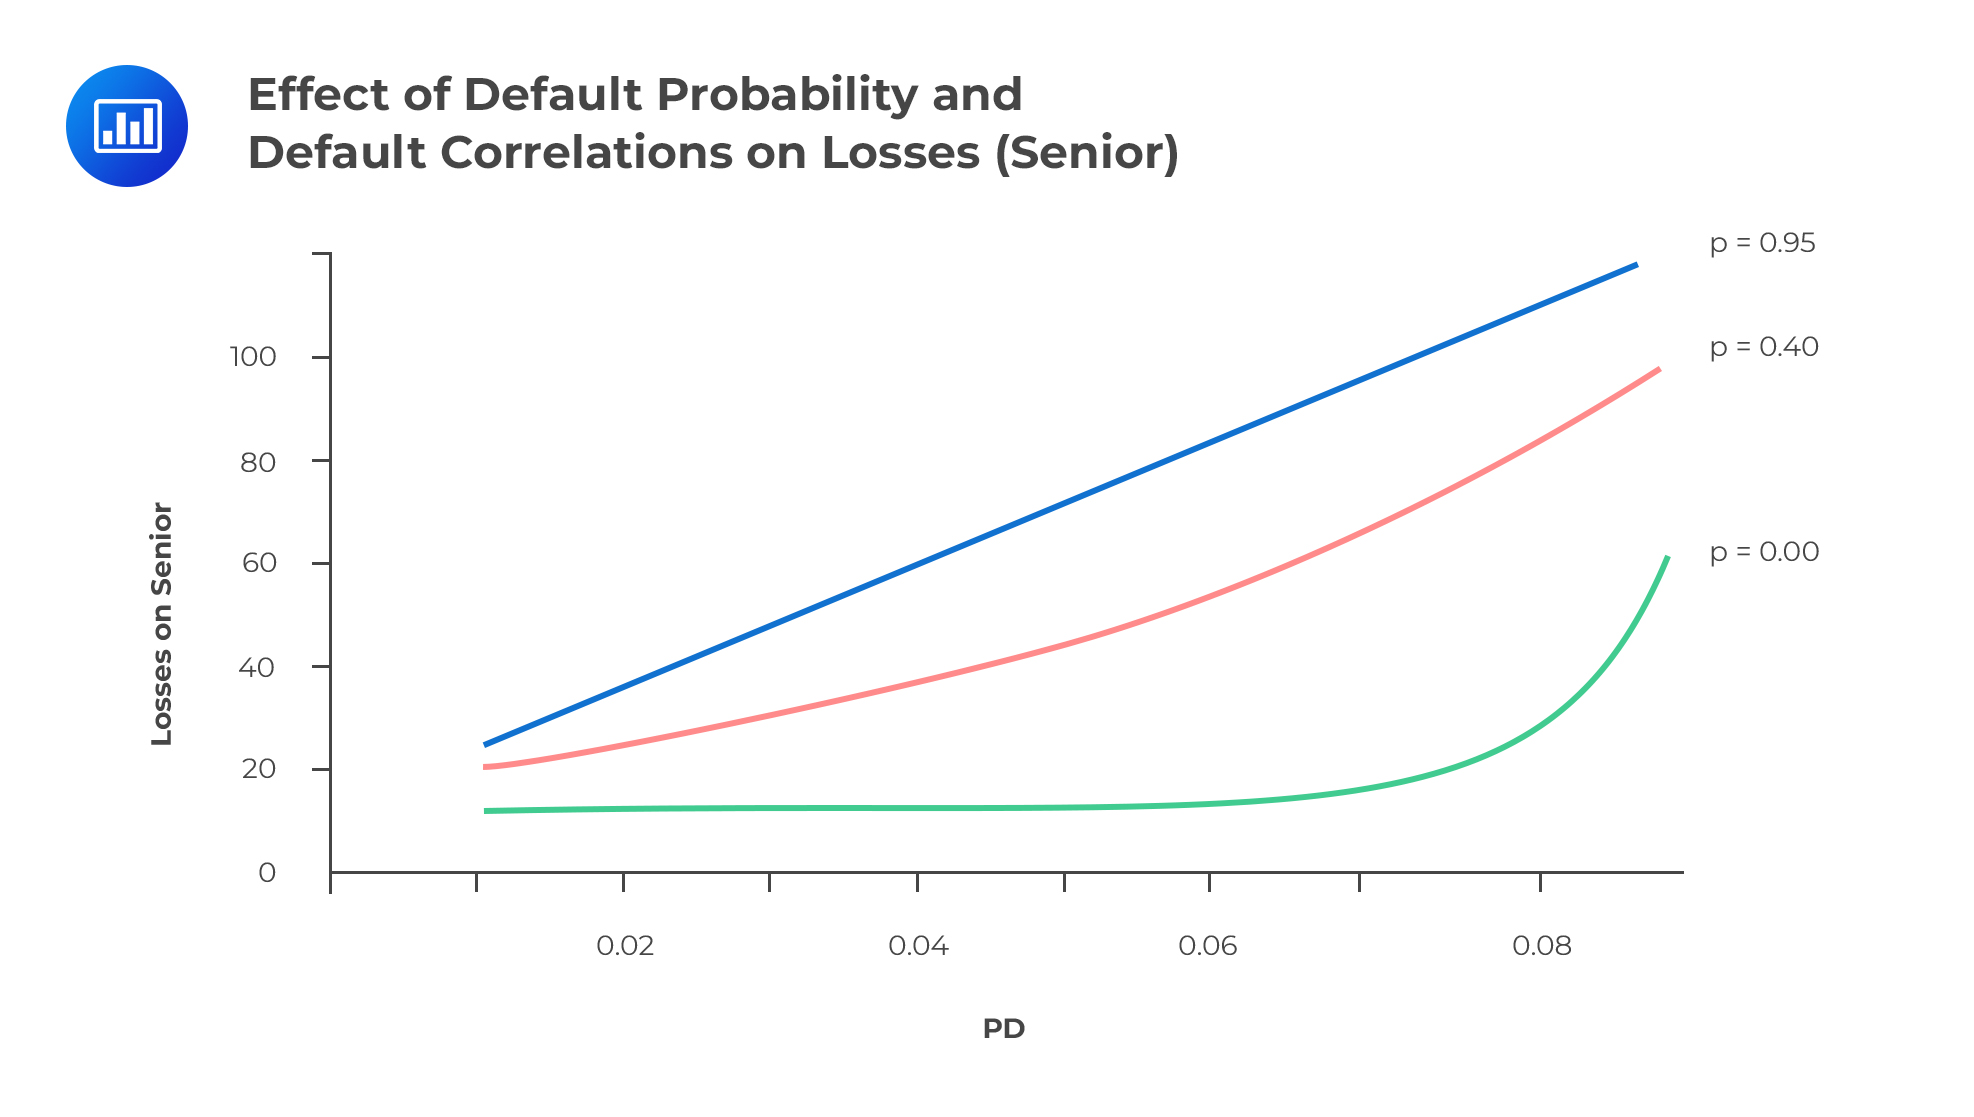 Effect of Default Probability and Default Correlations on Losses (Senior)